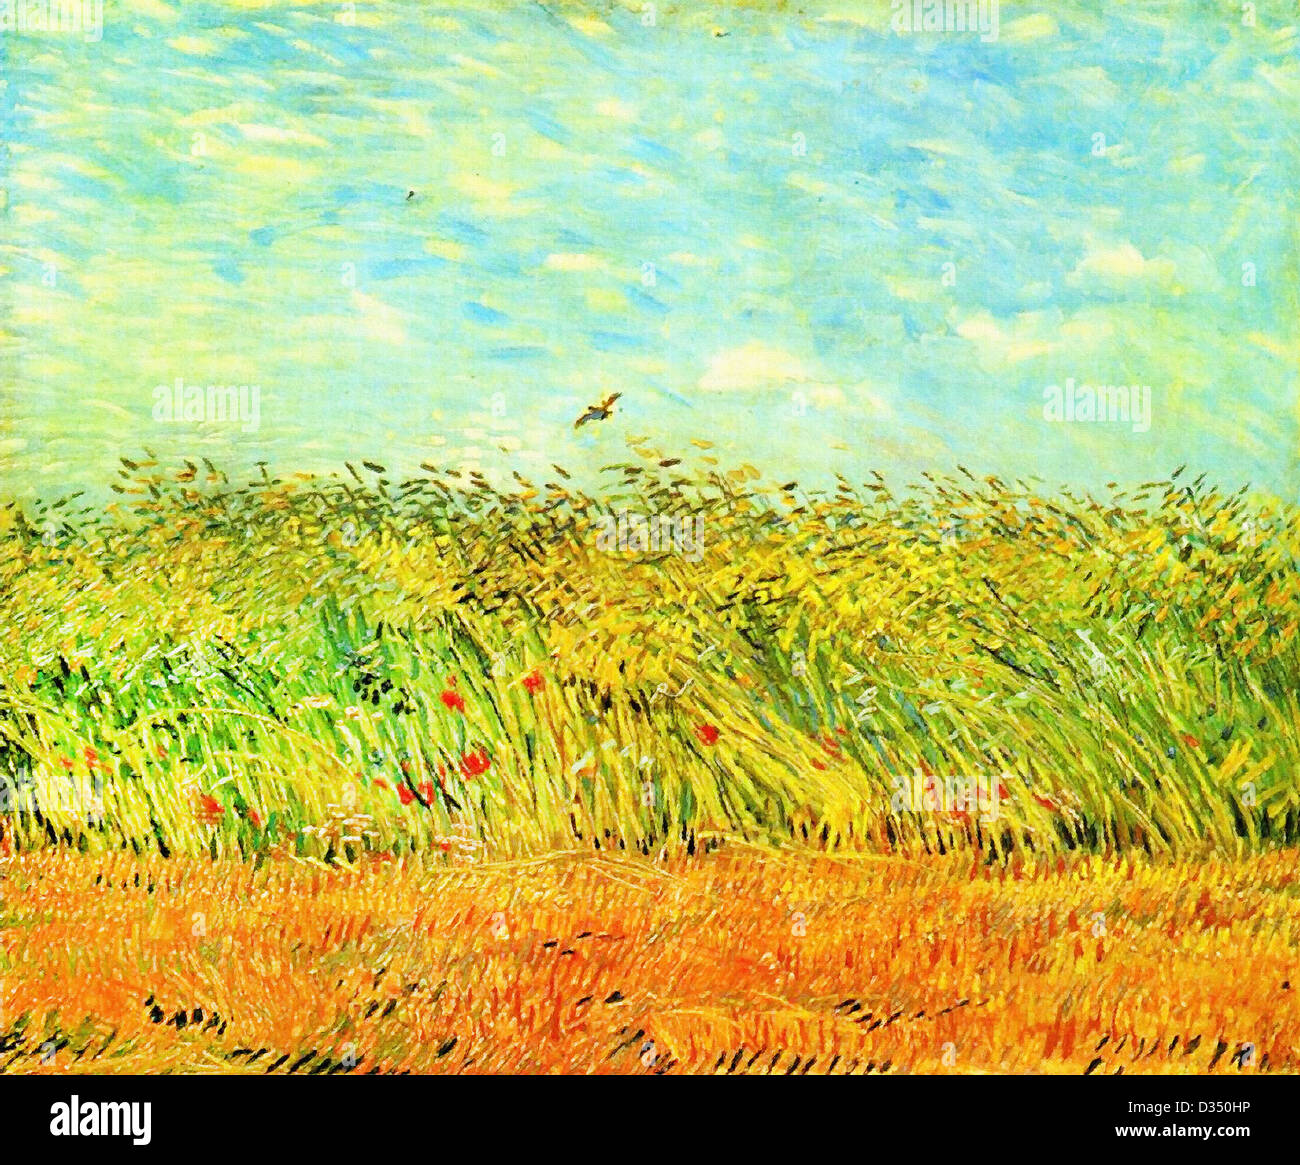 Vincent Van Gogh Wheat Field With A Lark 1887 Post